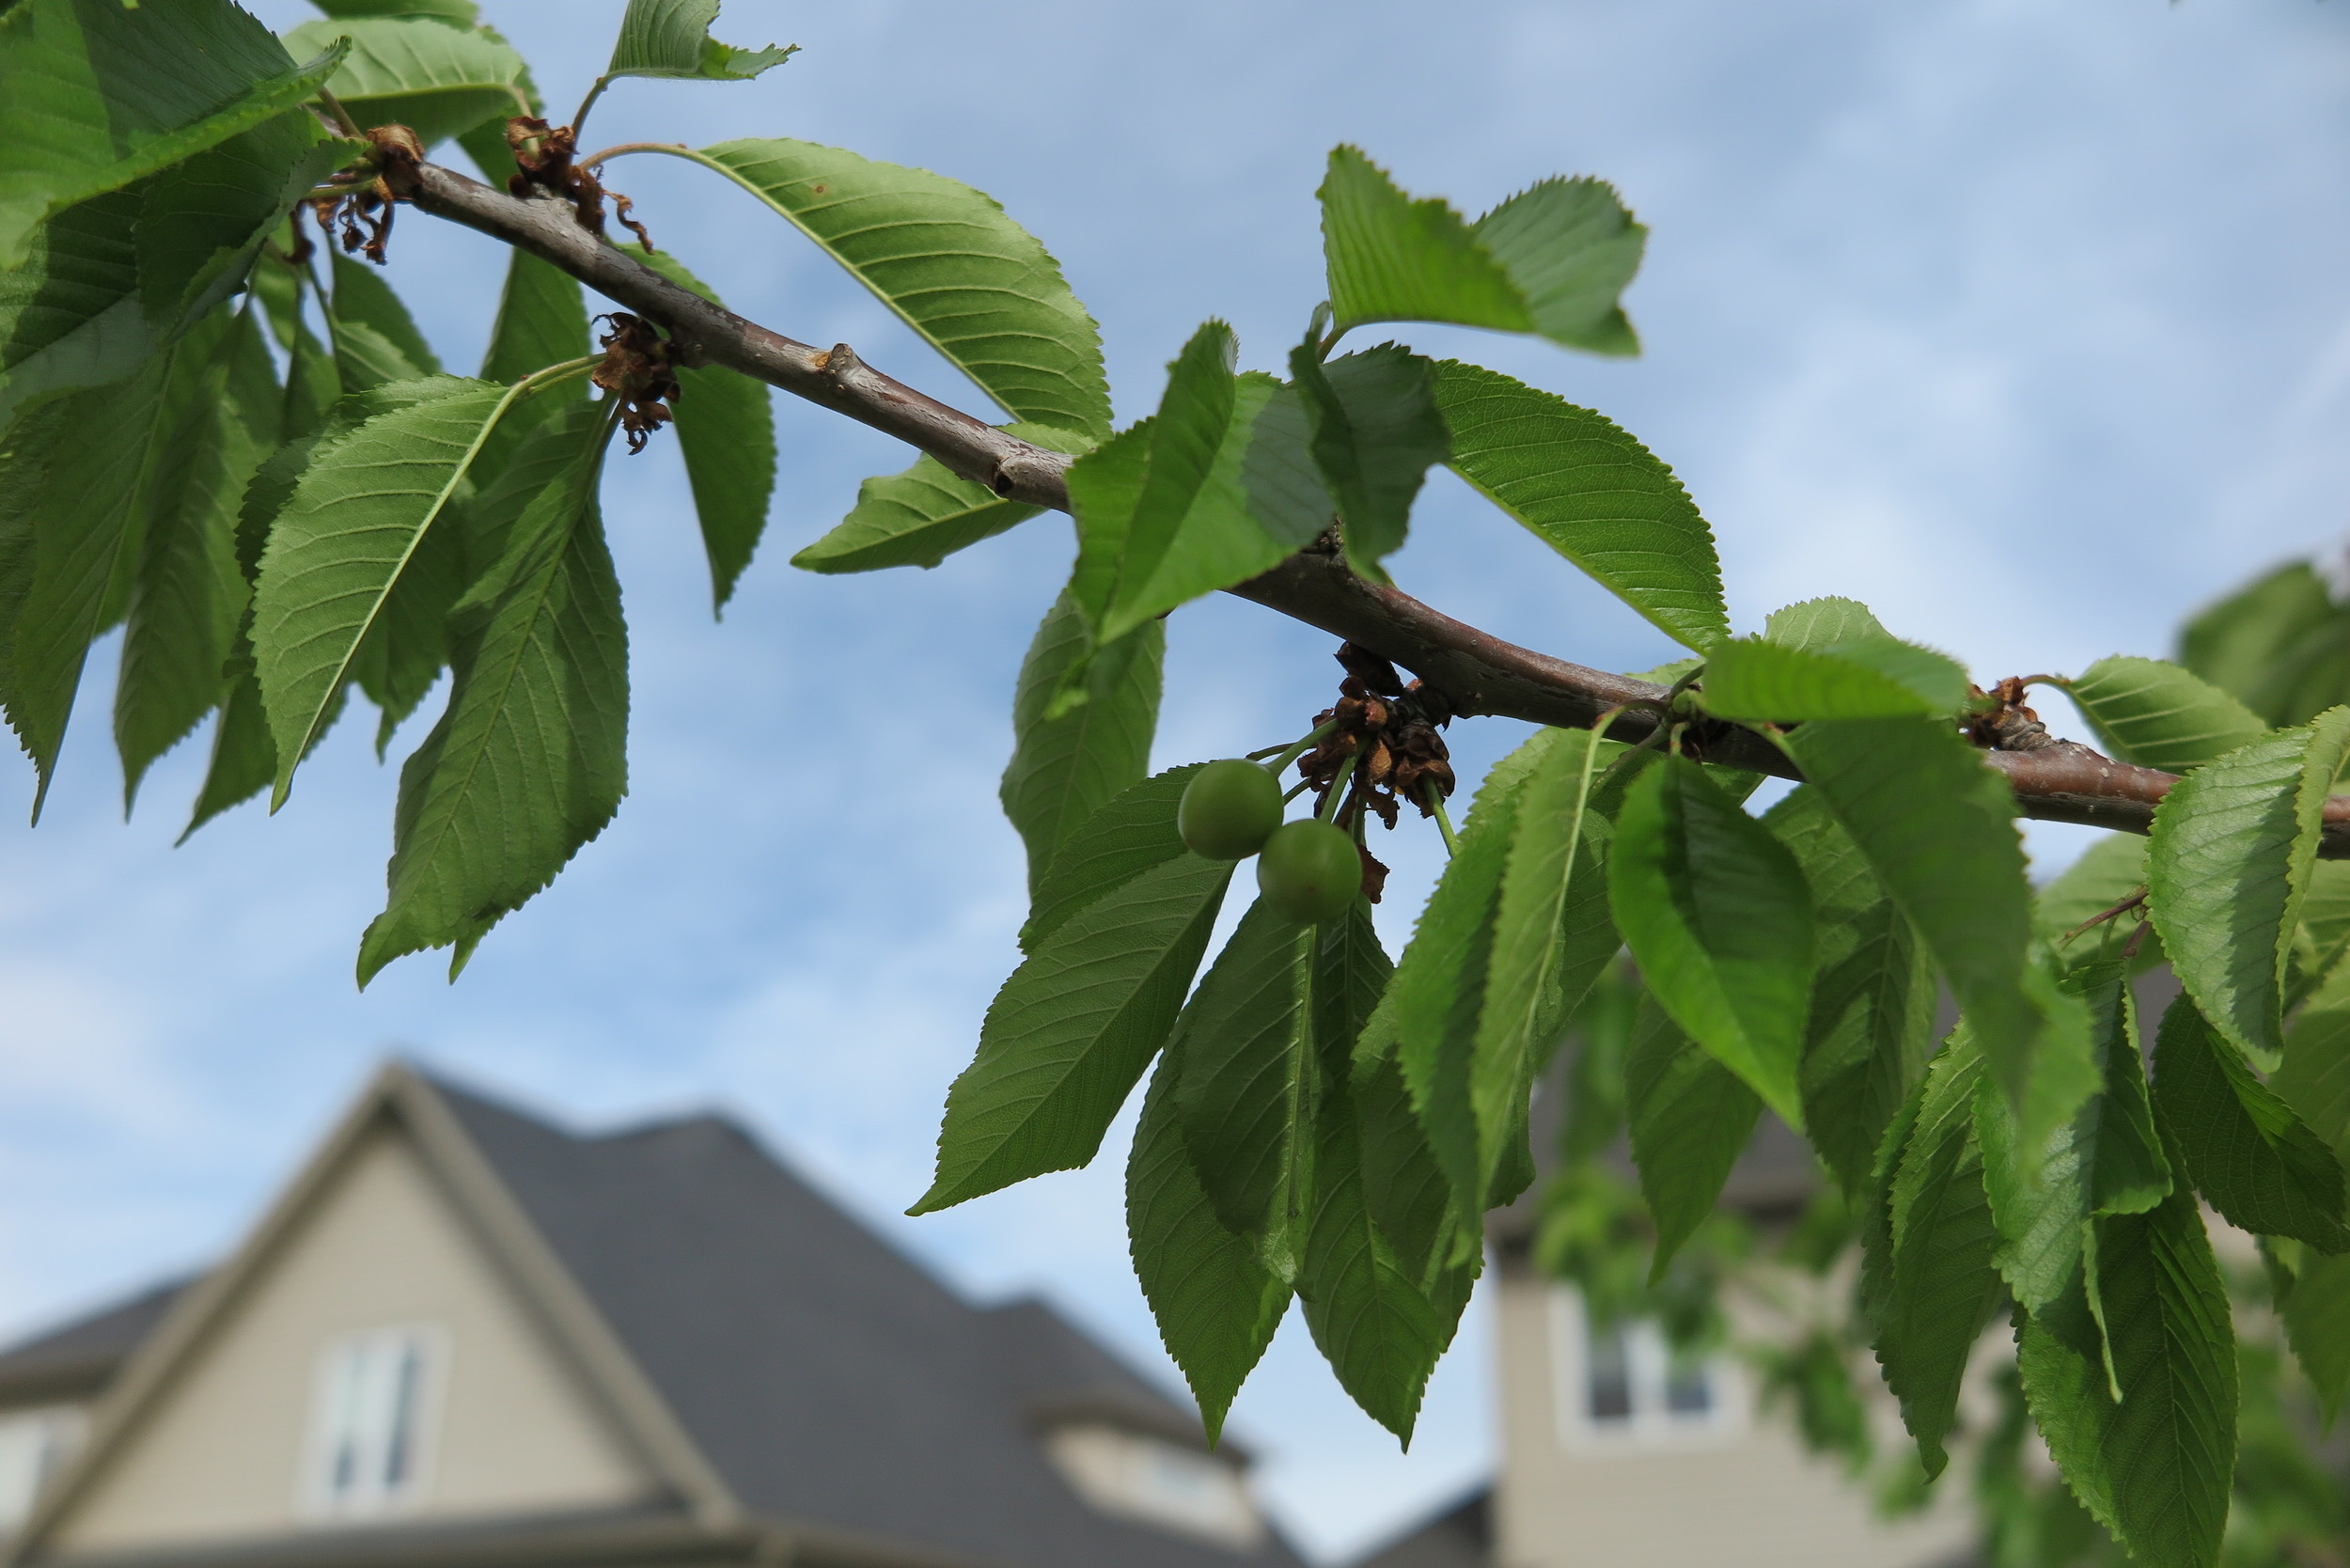 Cherries are starting to grow